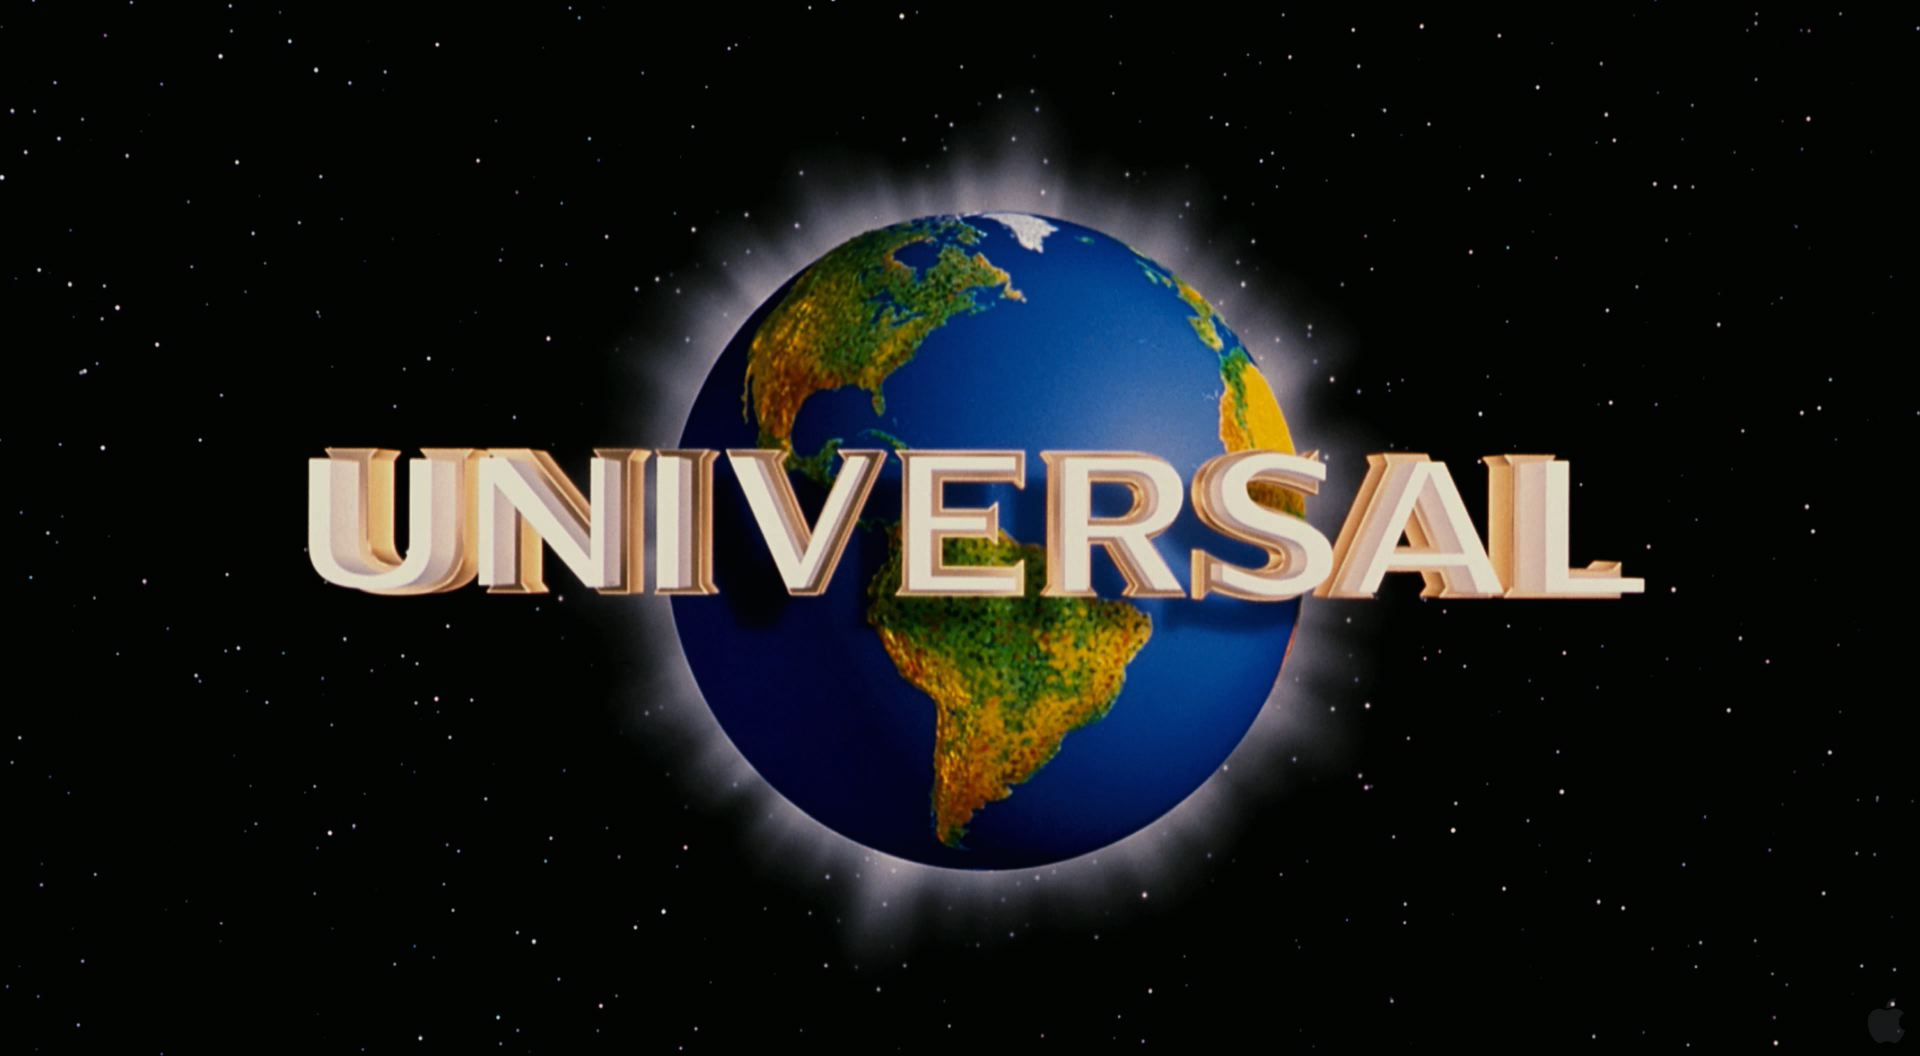 Universal Pictures Logo 2014 This logo was still used today